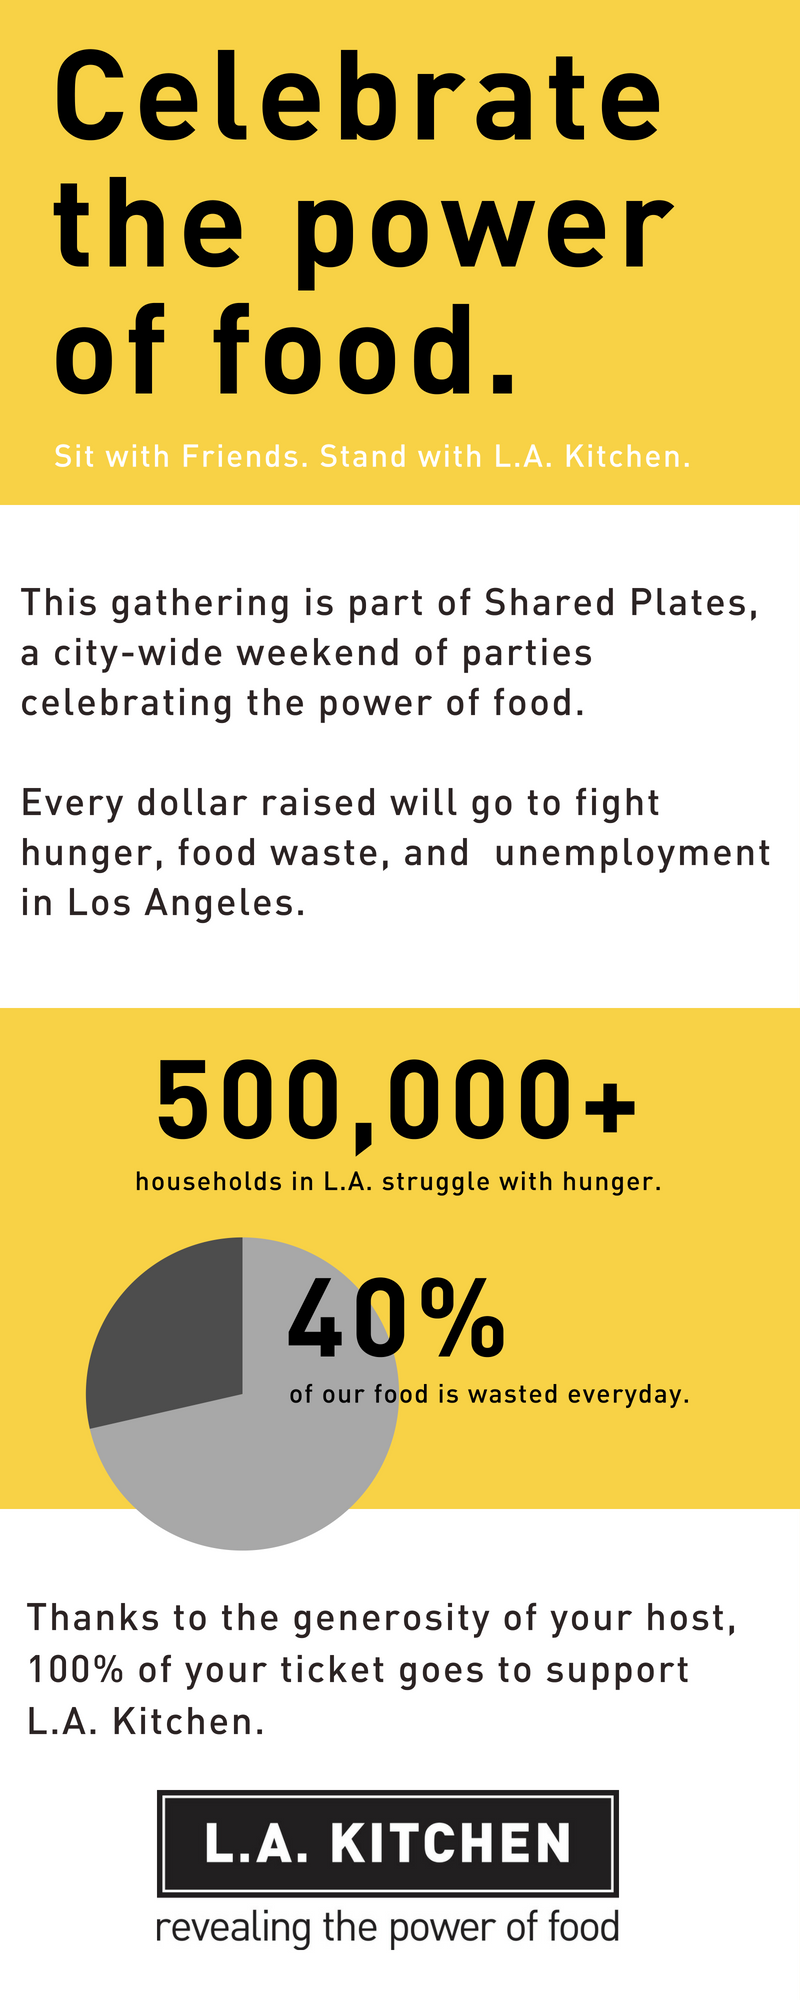 This gathering is part of Shared Plates, a city-wide weekend of parties celebrating the power of food.  Every dollar raised will go to fight hunger, food waste, and  unemployment in Los Angeles. Thanks to the generosity of your host, 100% of your ticket goes to support L.A. Kitchen.